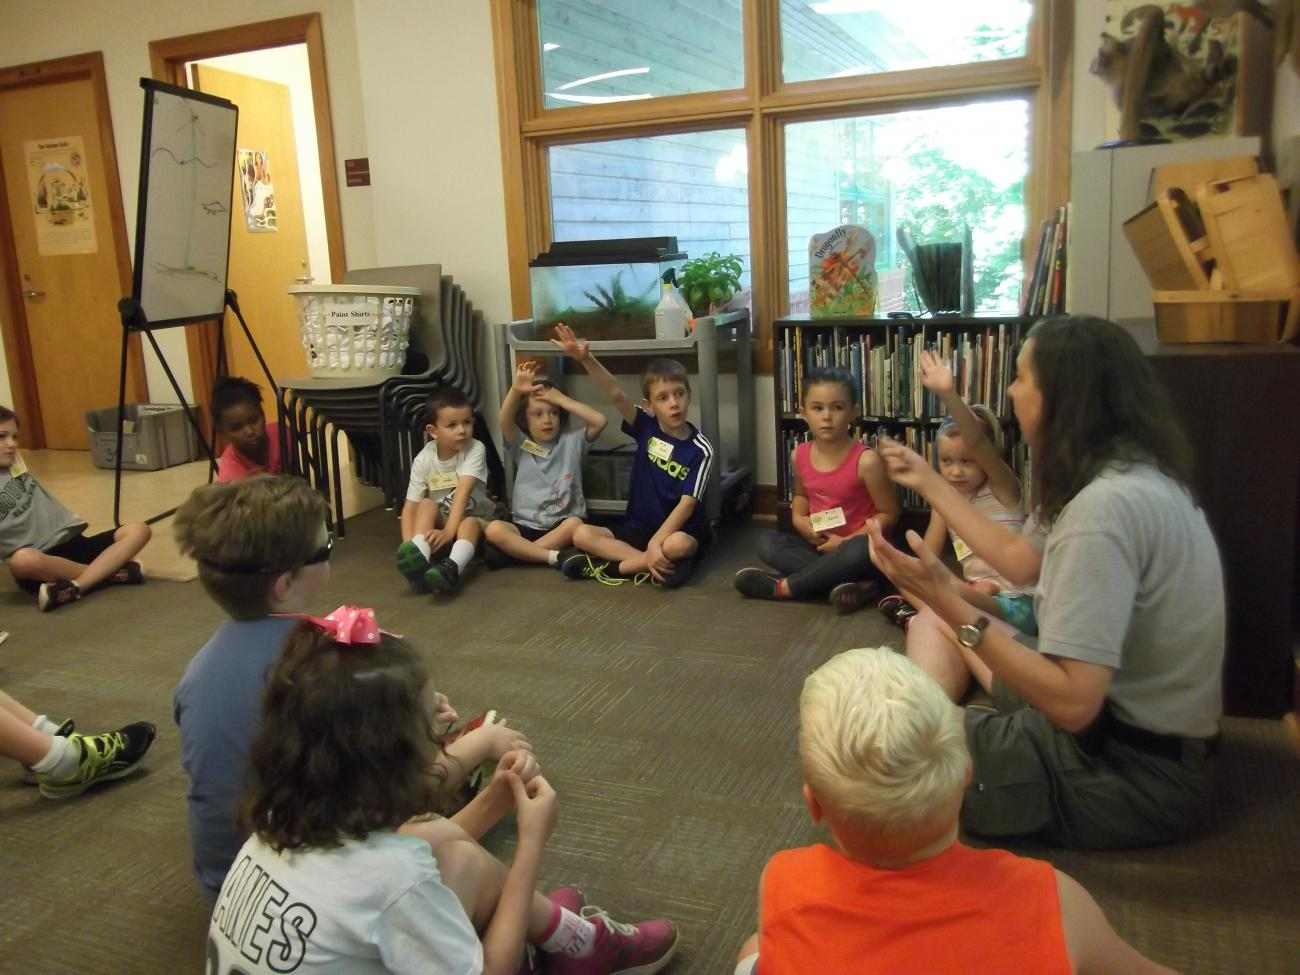 Kids and instructor sitting in a sharing circle at summer camp.